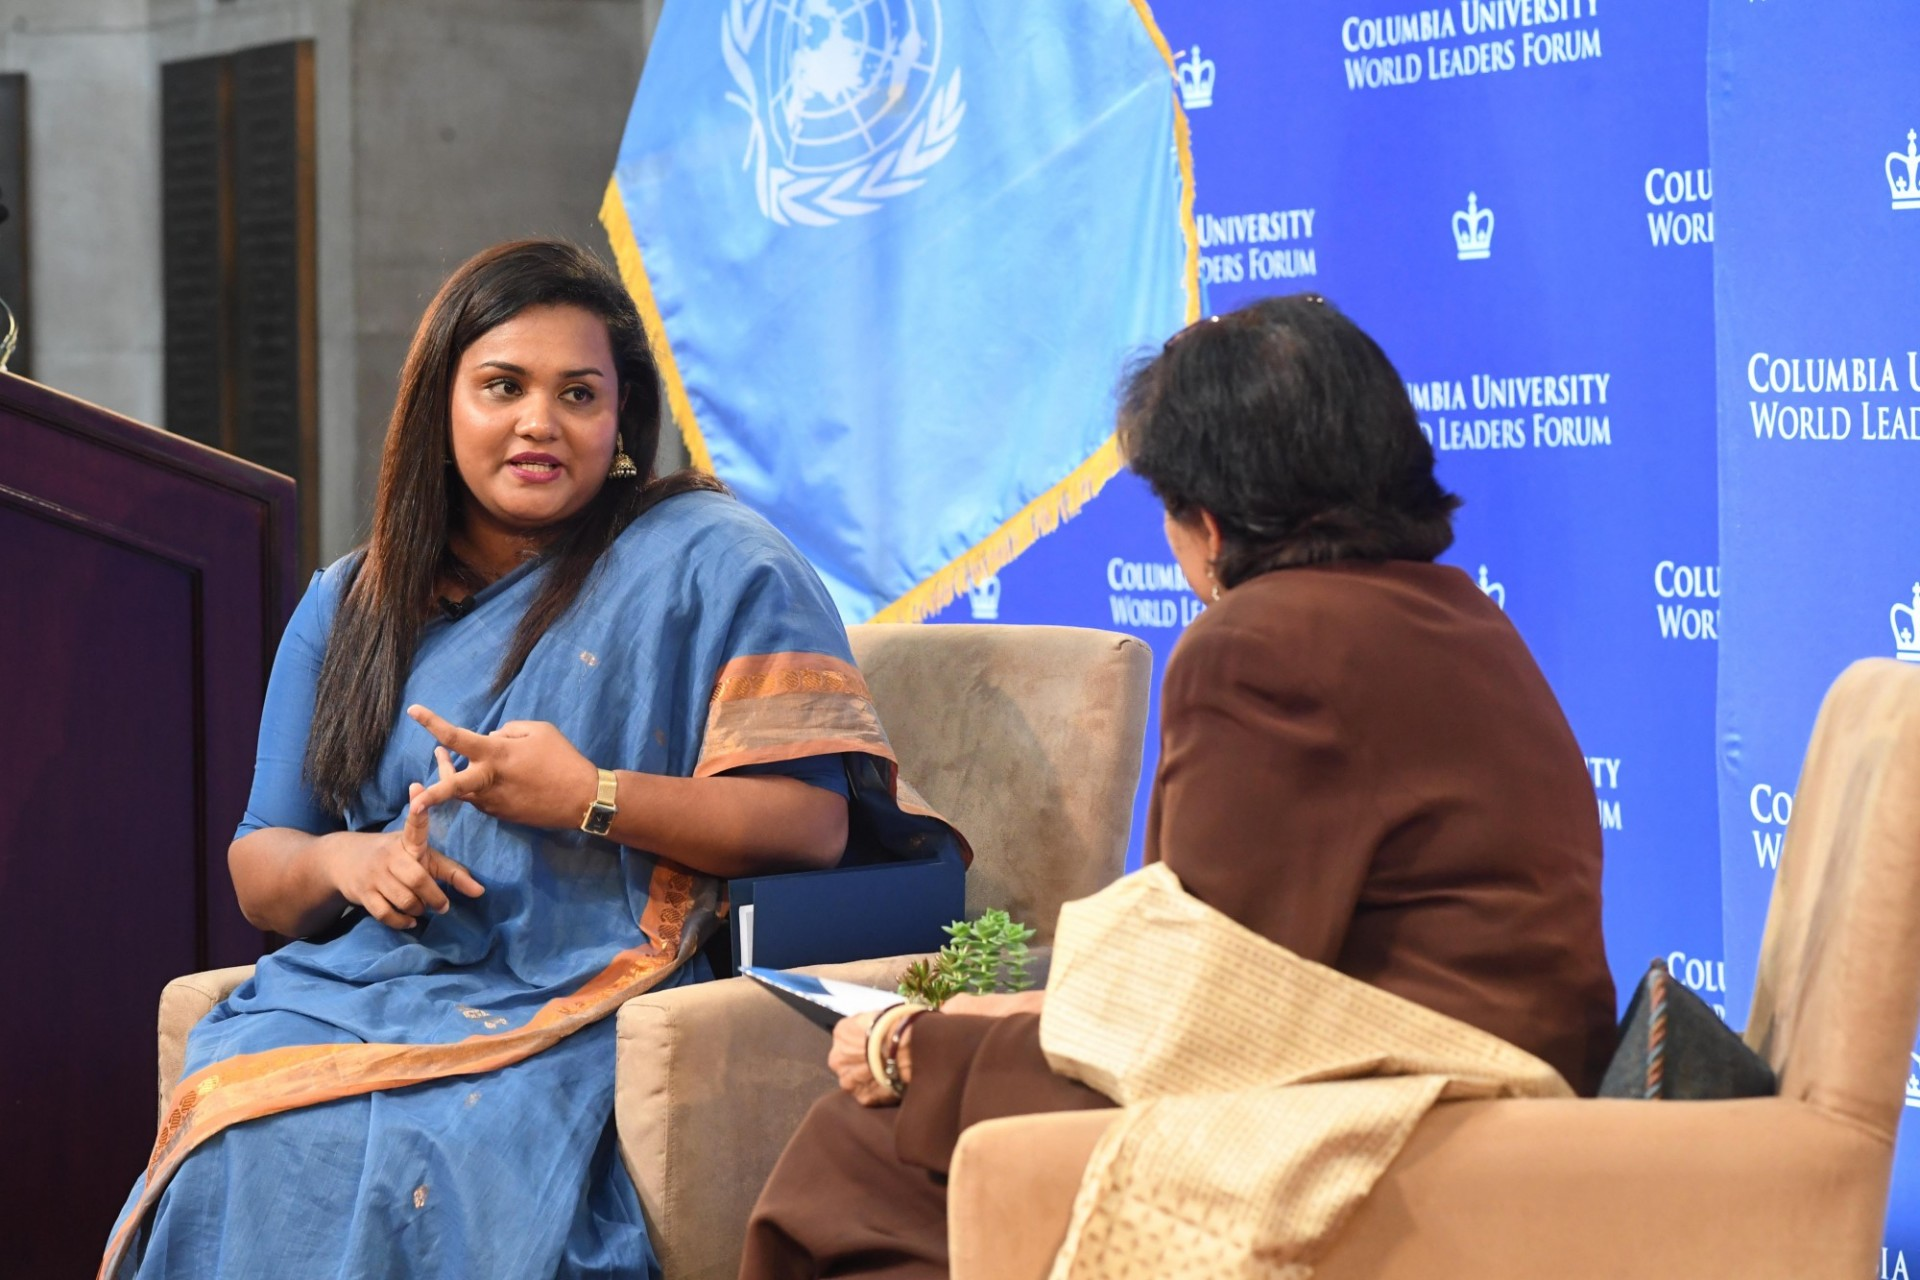 Vishakha N. Desai, Vice Chair, Committee on Global Thought, Senior Advisor for Global Affairs, and Senior Research Scholar, School of International and Public Affairs moderates the question and answer session with the audience.